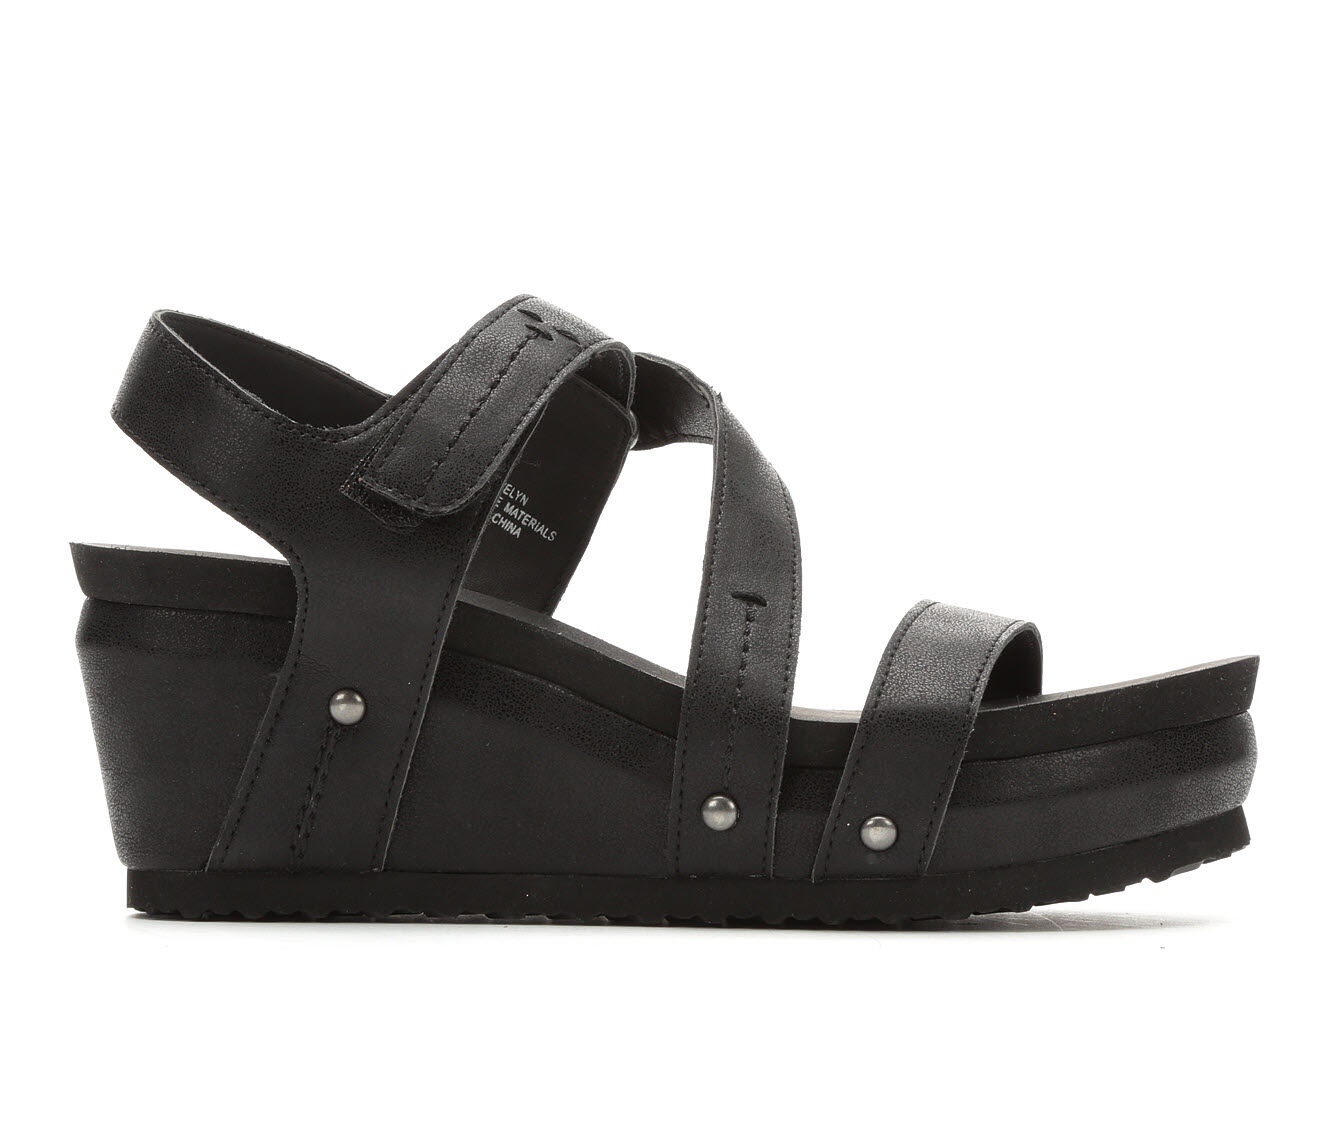 Women's Axxiom Evelyn Strappy Wedge Sandals Black